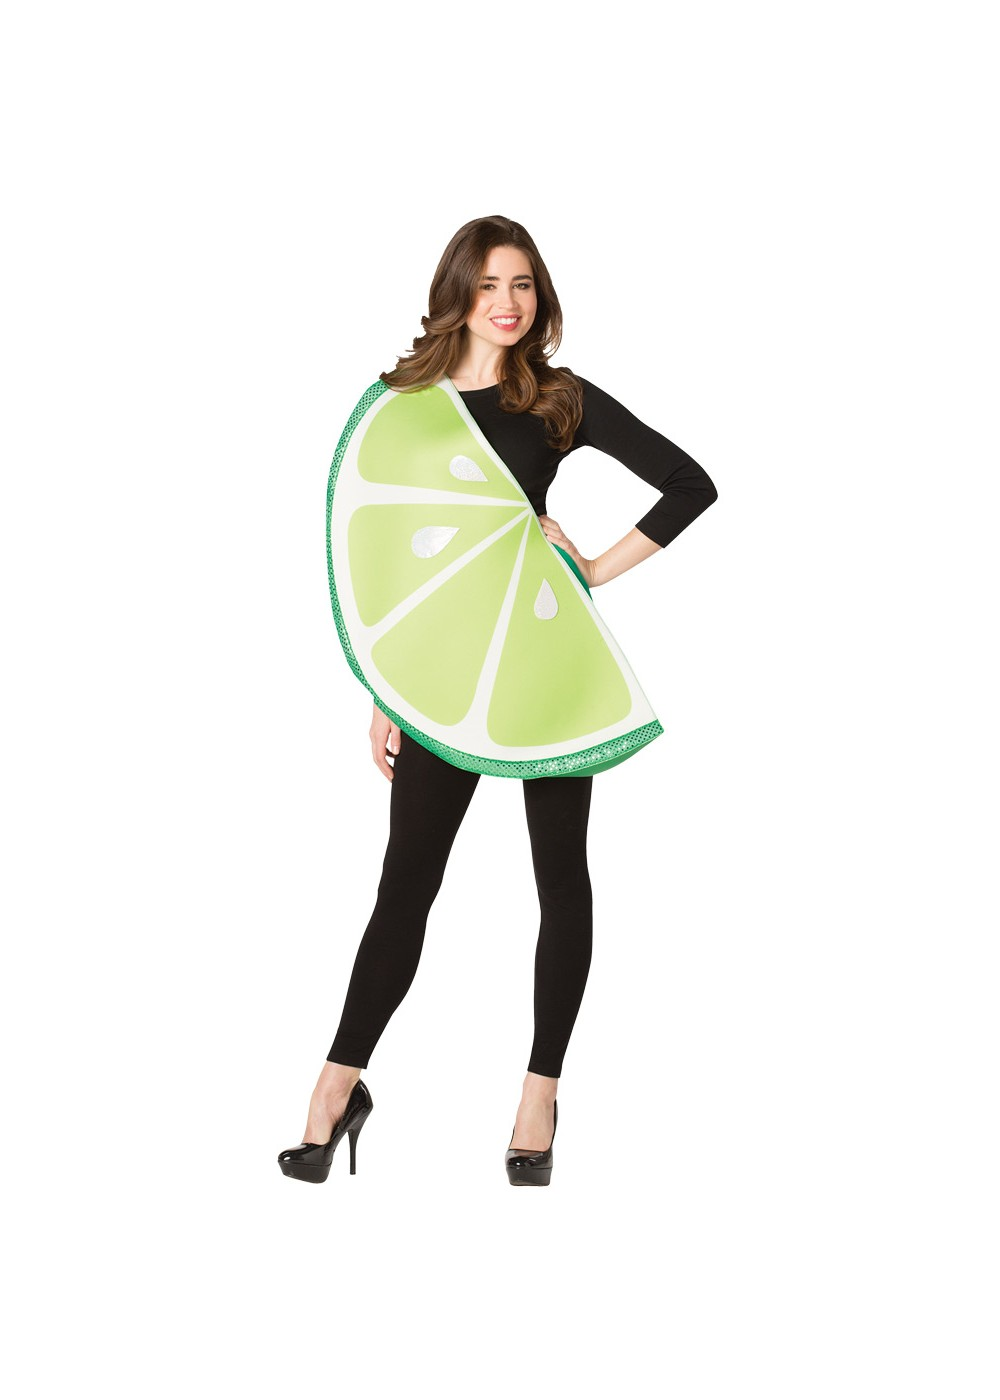 Slice Of Lime Costume